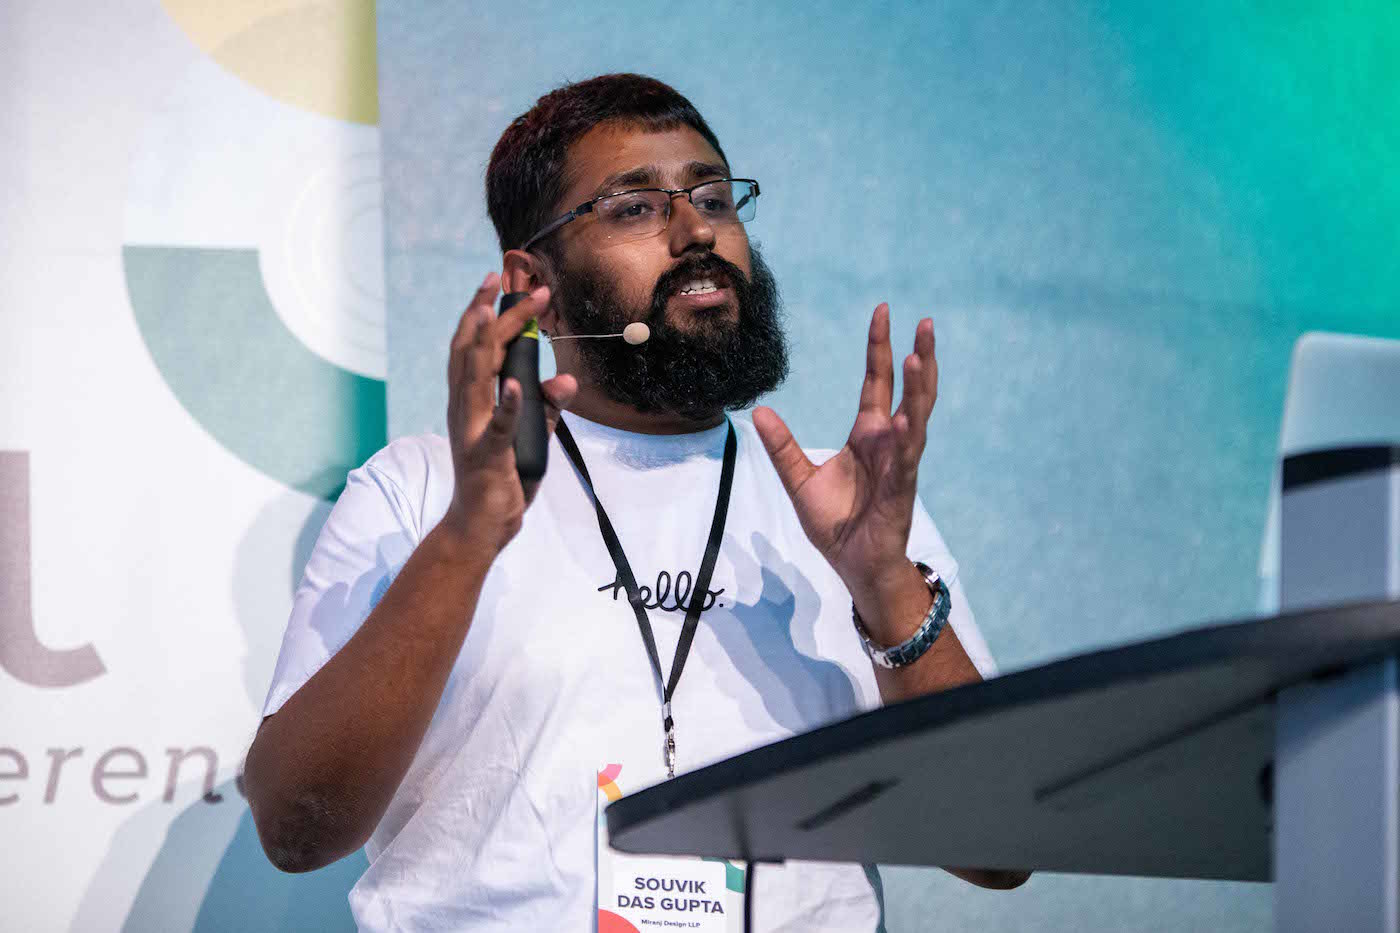 Souvik speaking at Dot All 2018, Berlin